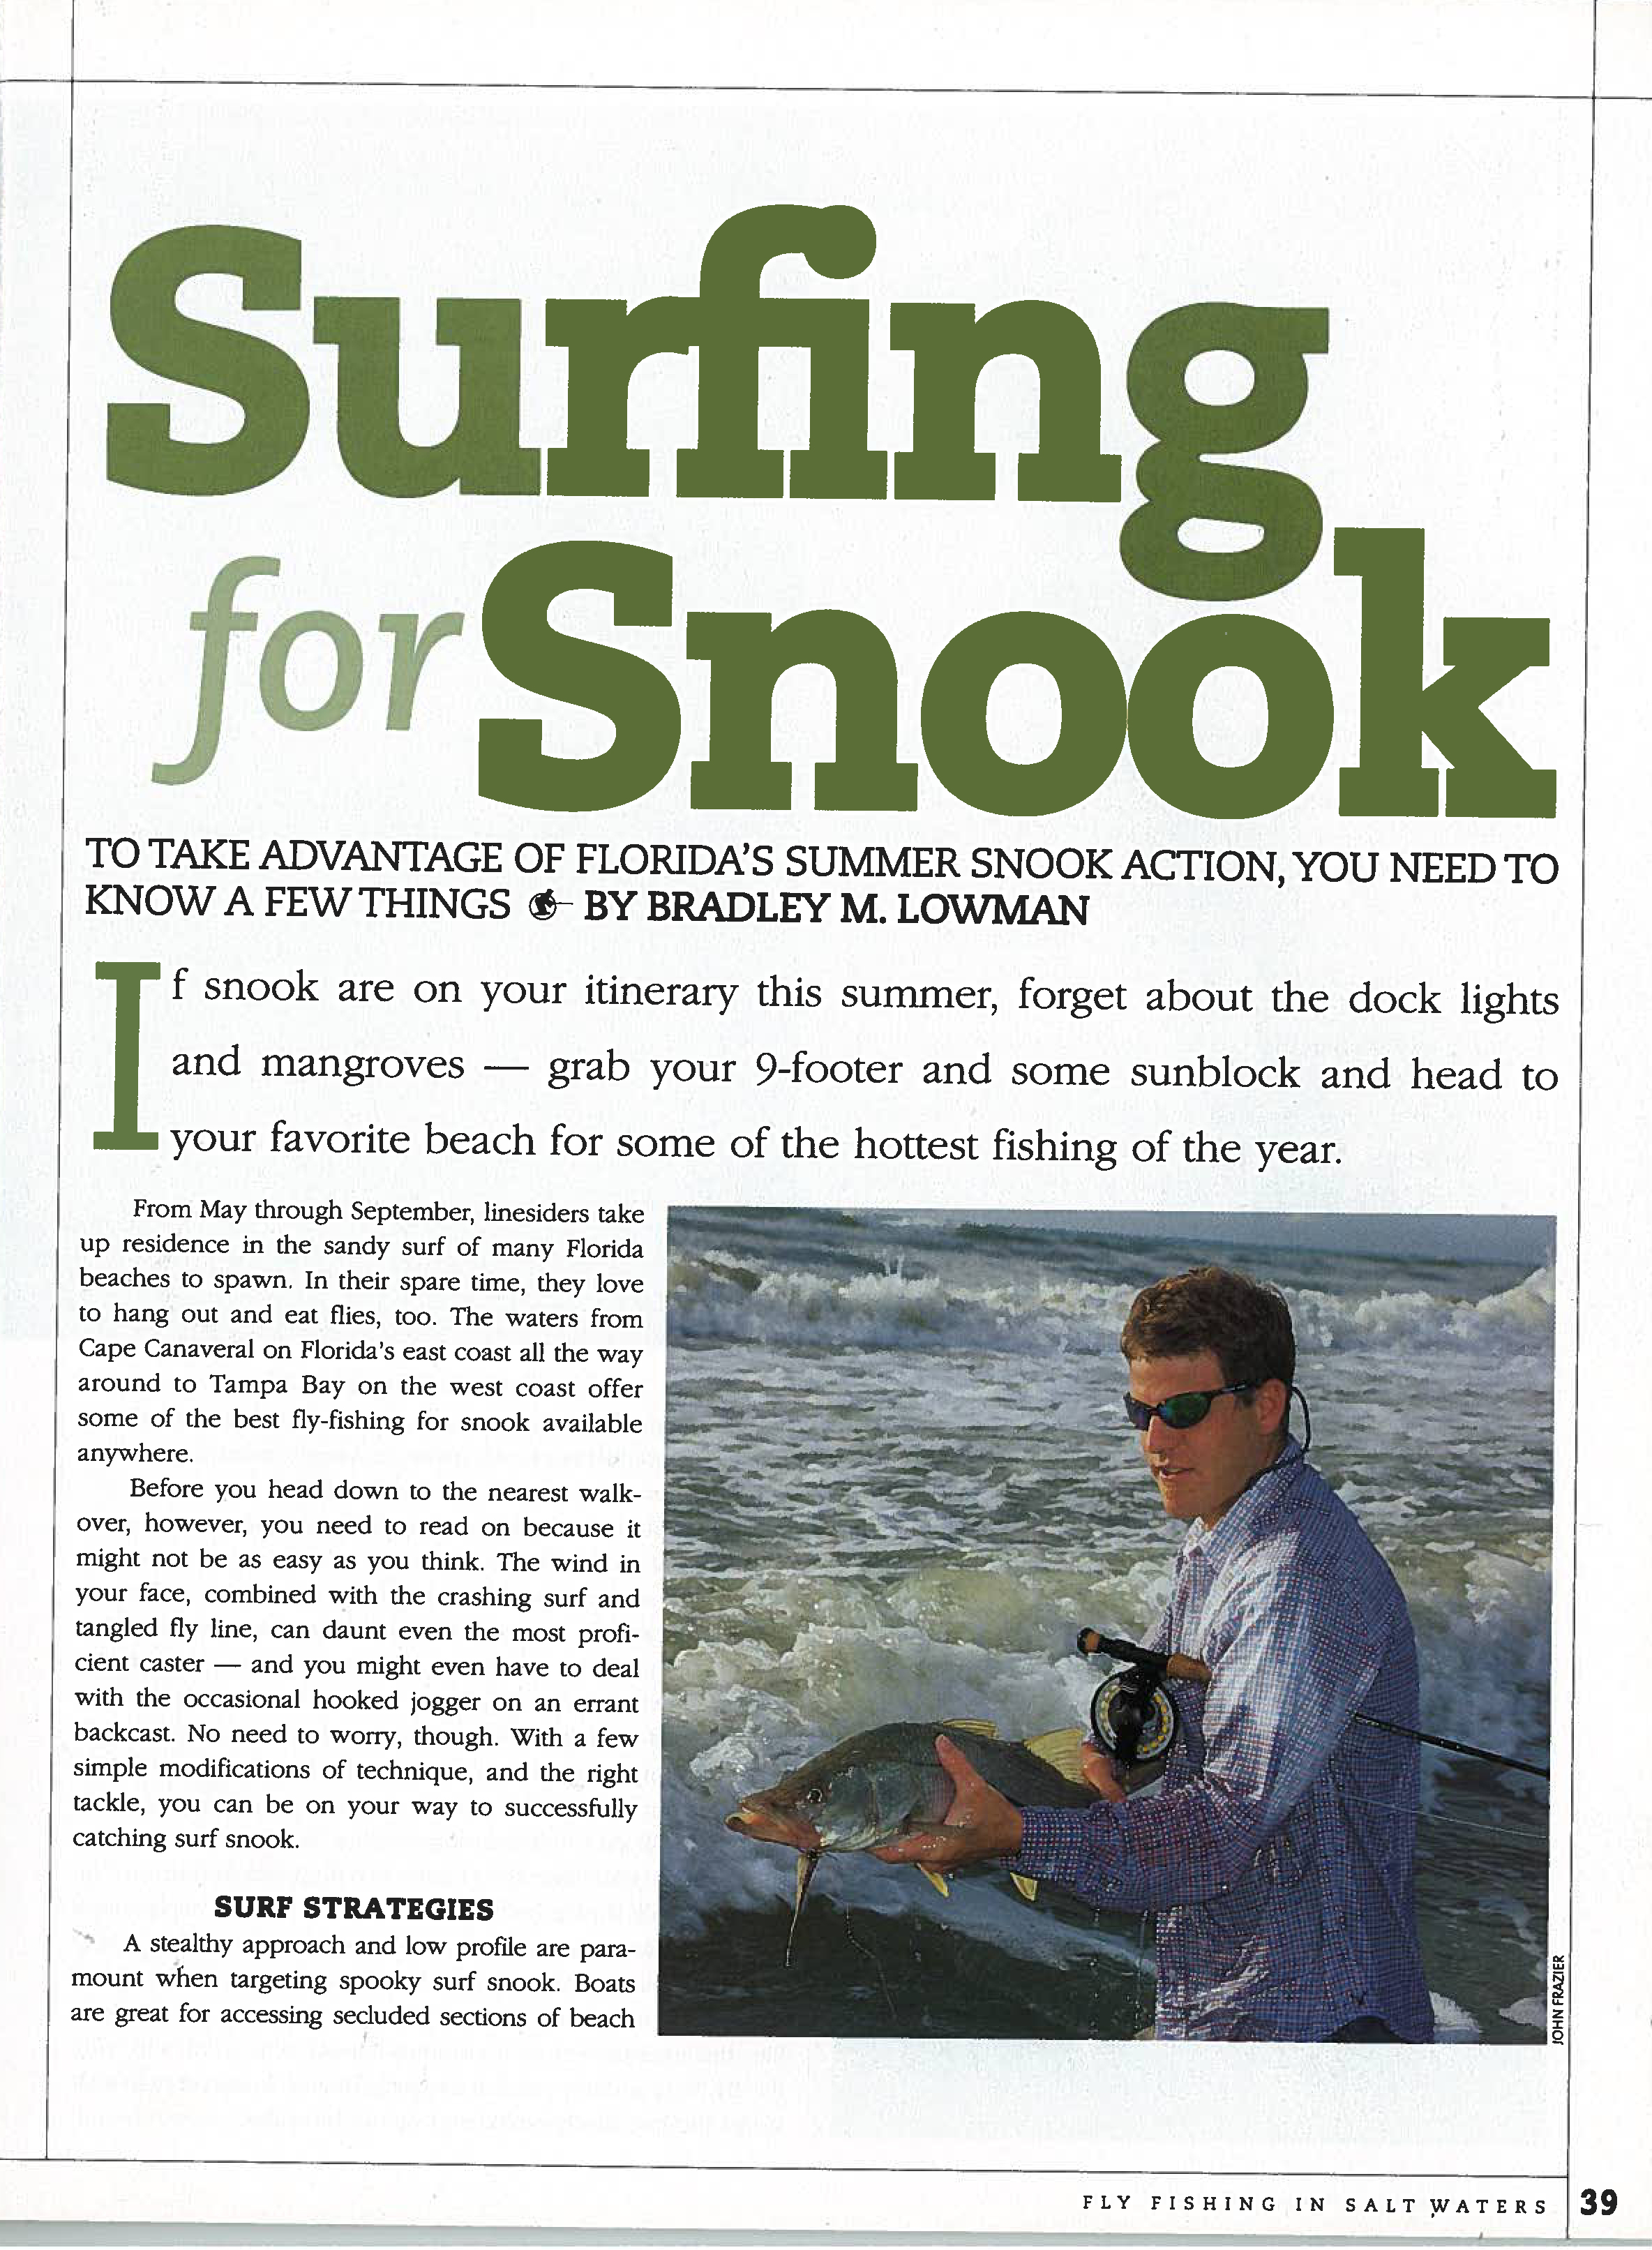 july-august 2006 surfing for snook (pg.